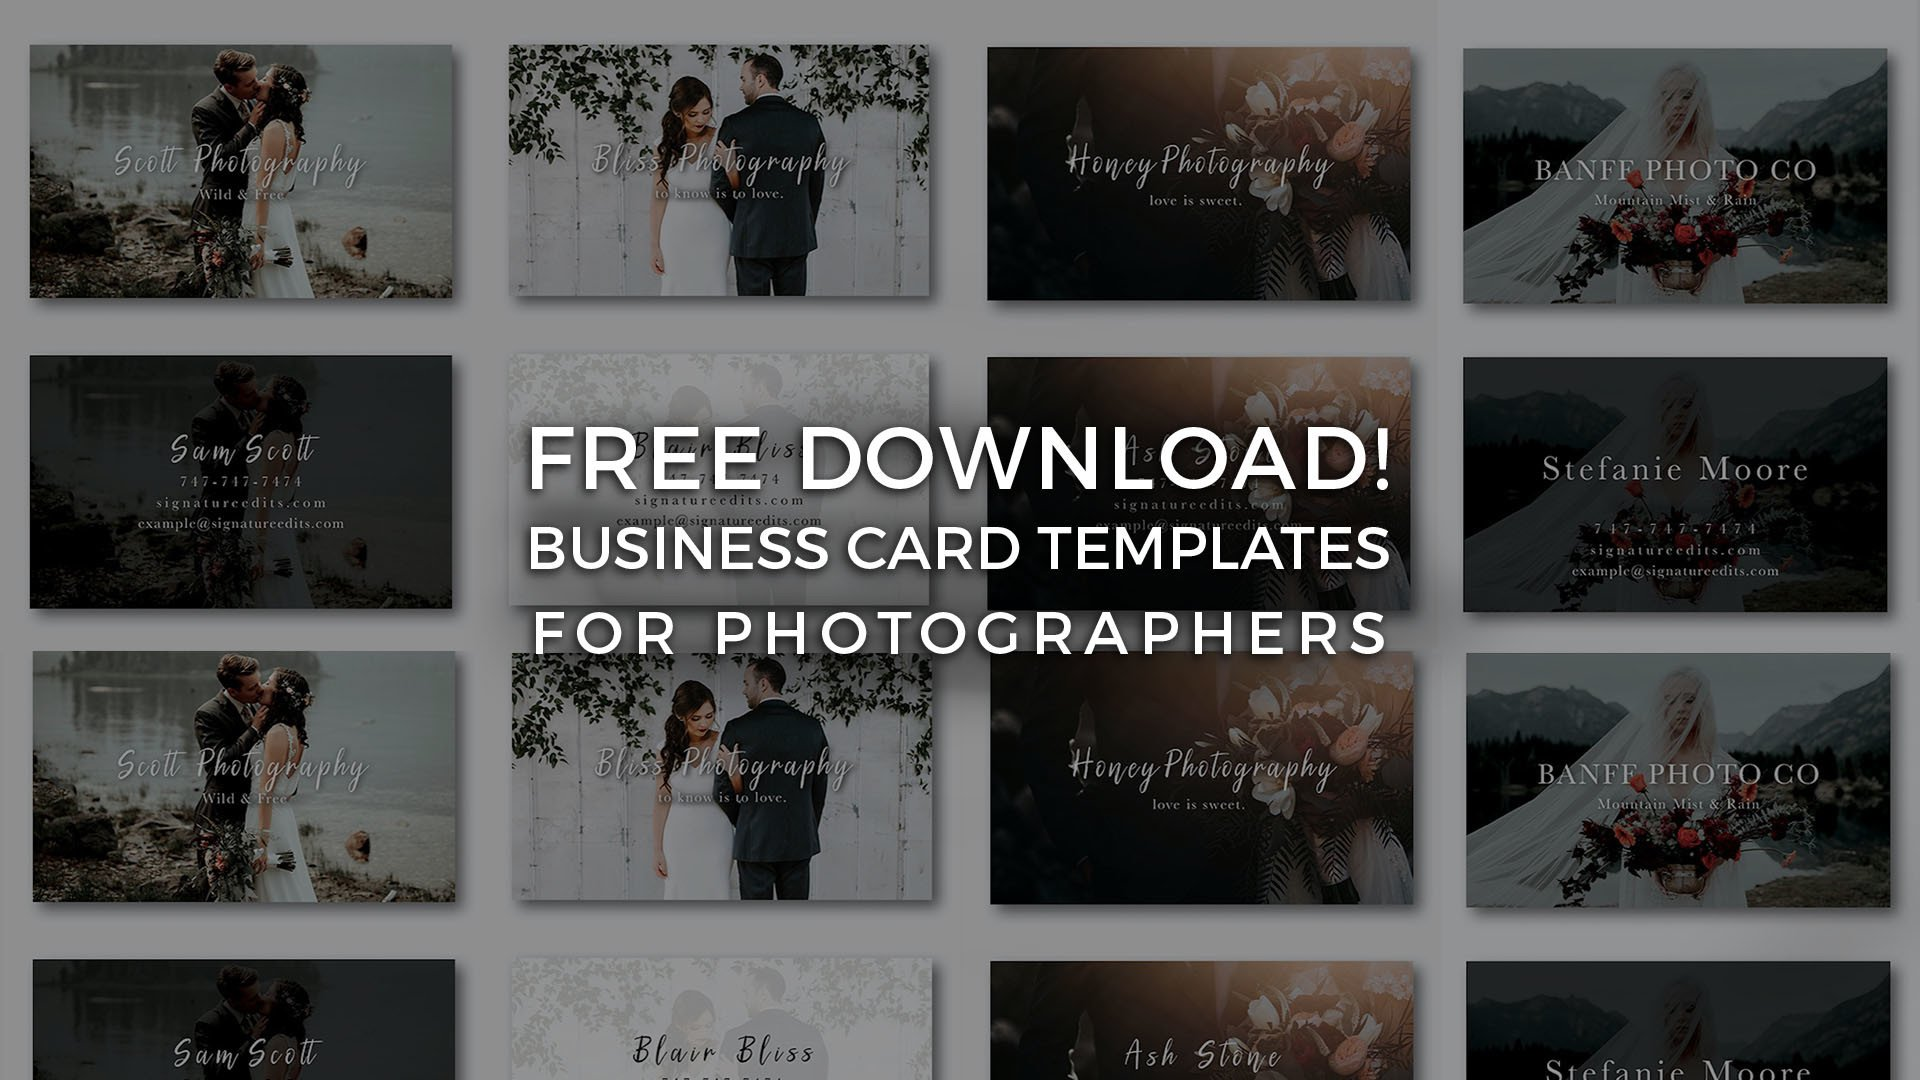 Free photographer business card templates signature edits edit free photographer business card template psd download cheaphphosting Choice Image